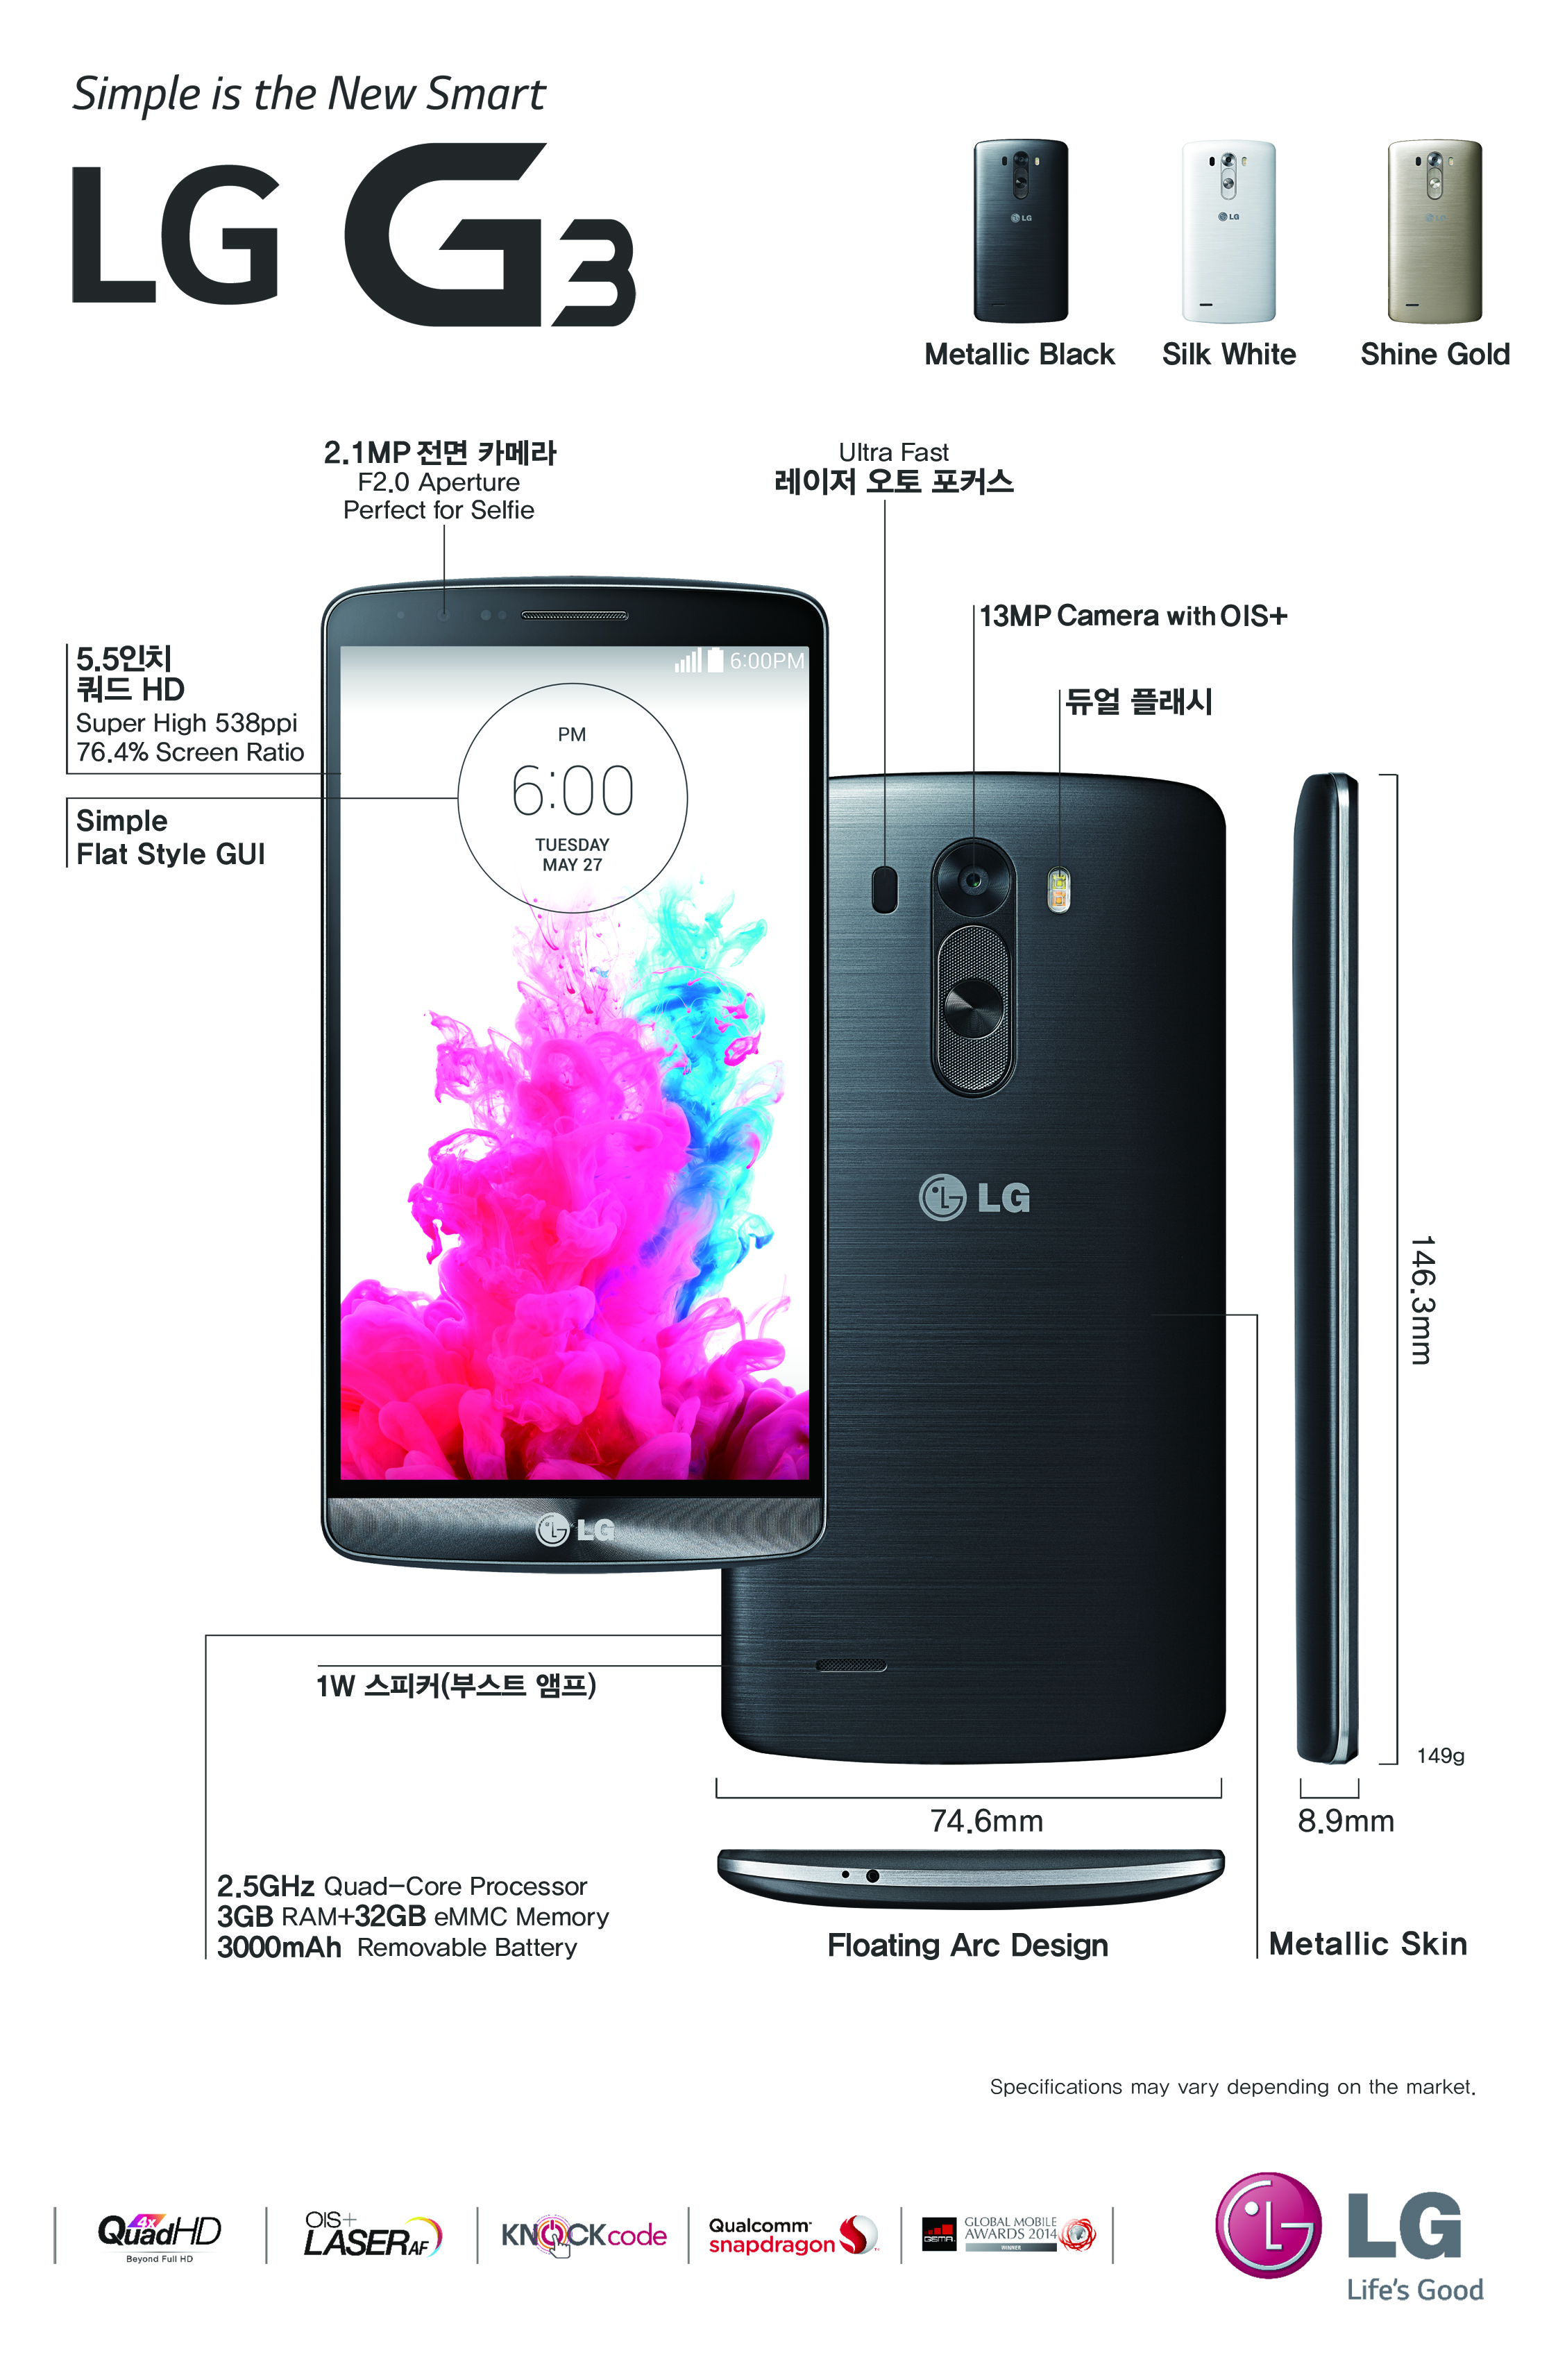 File Lg G3 Specification Jpg Wikimedia Commons